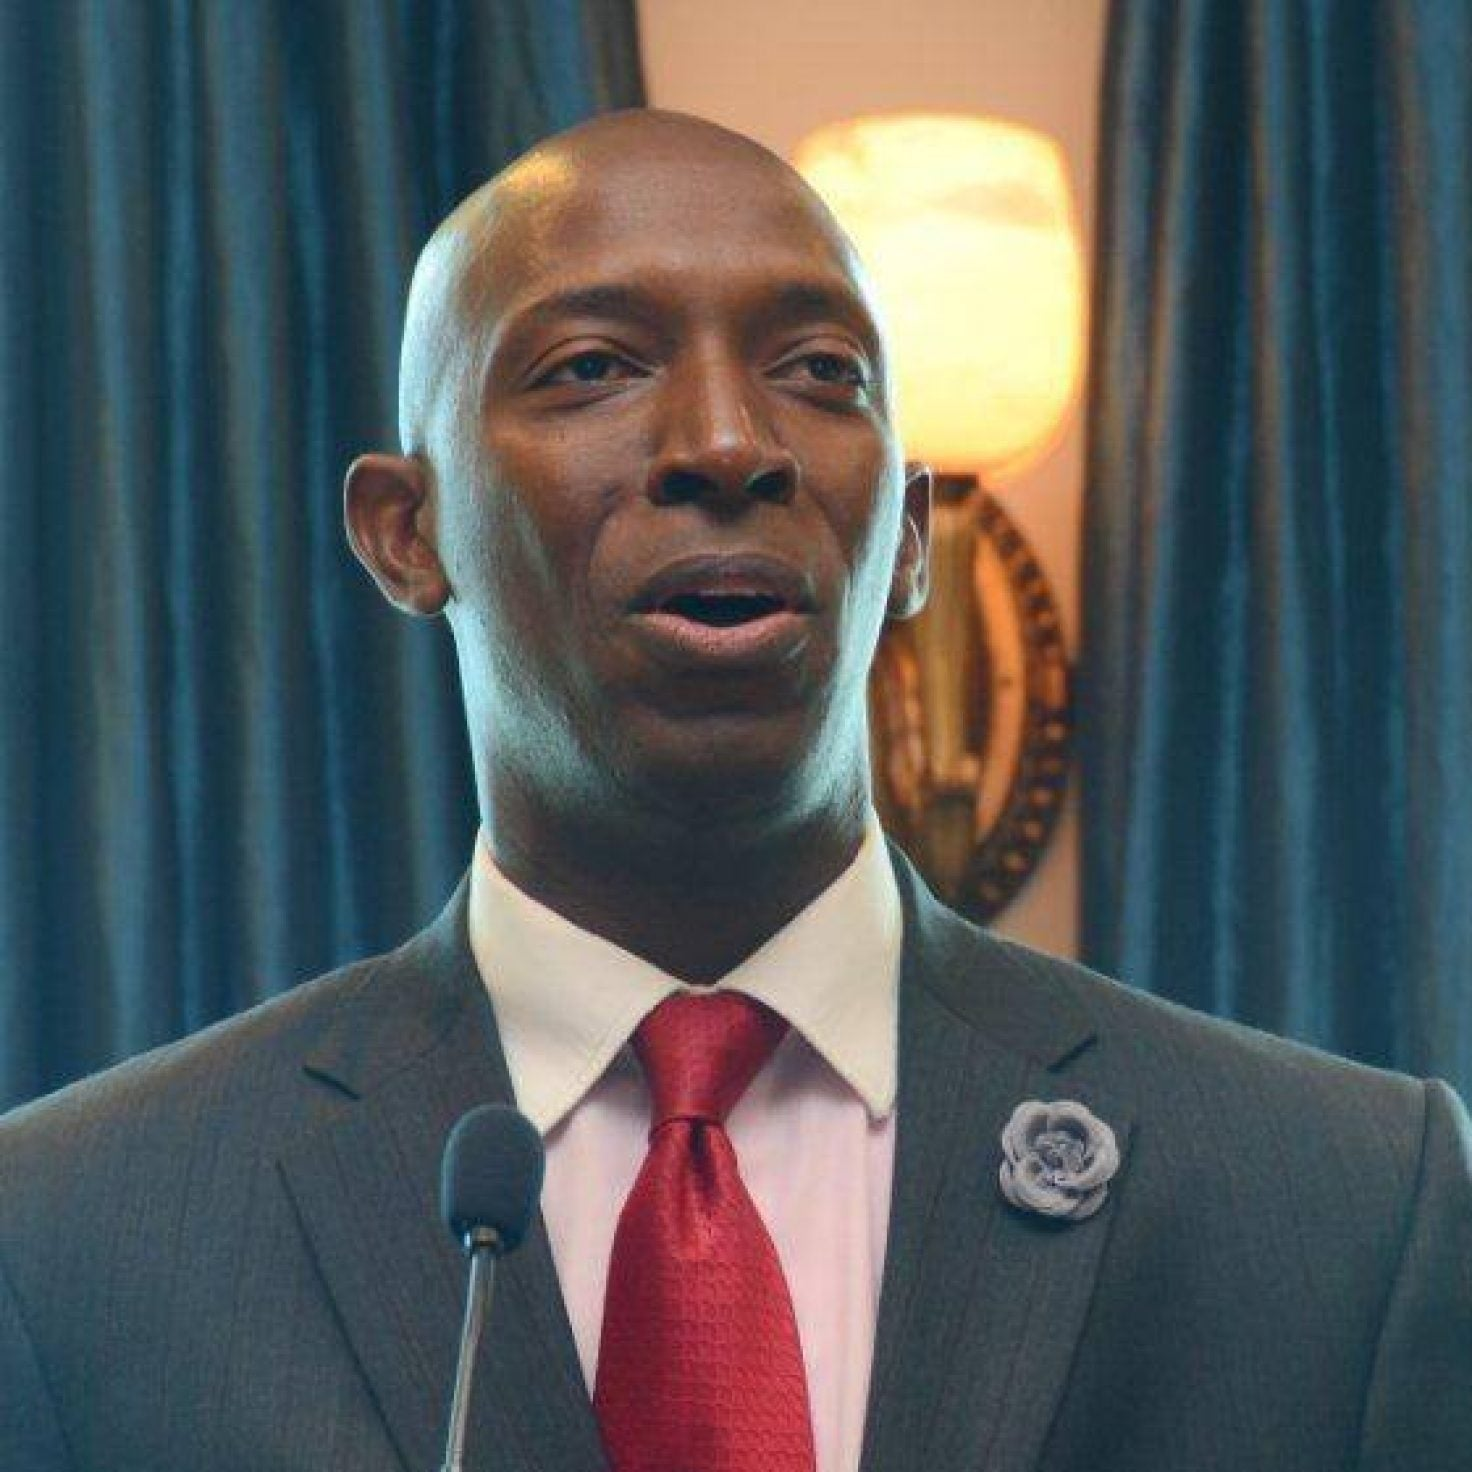 Florida Mayor Wayne Messam Officially Enters 2020 Presidential Race